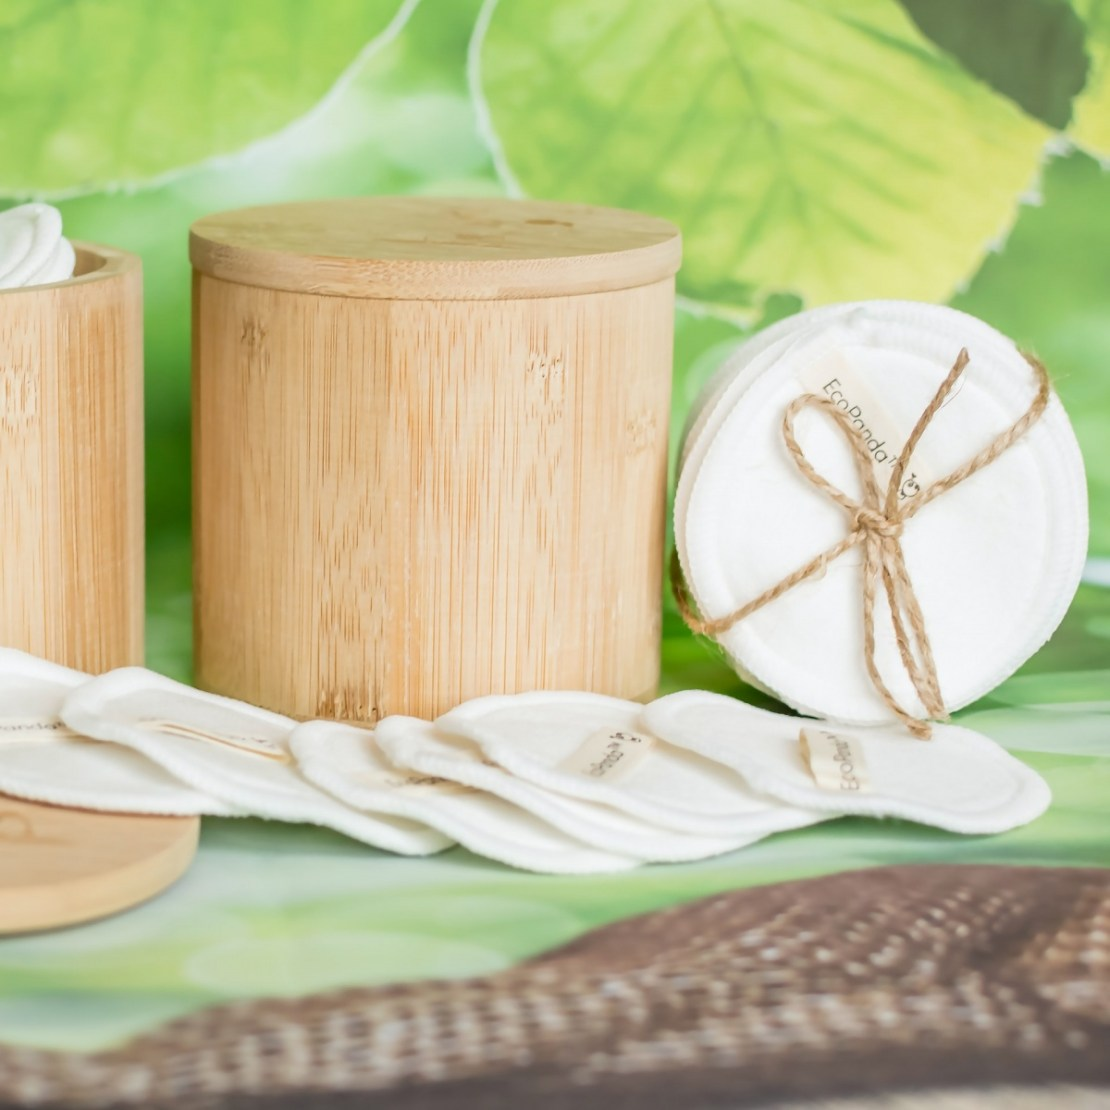 The Growing Popularity of Sustainable Lifestyle Products